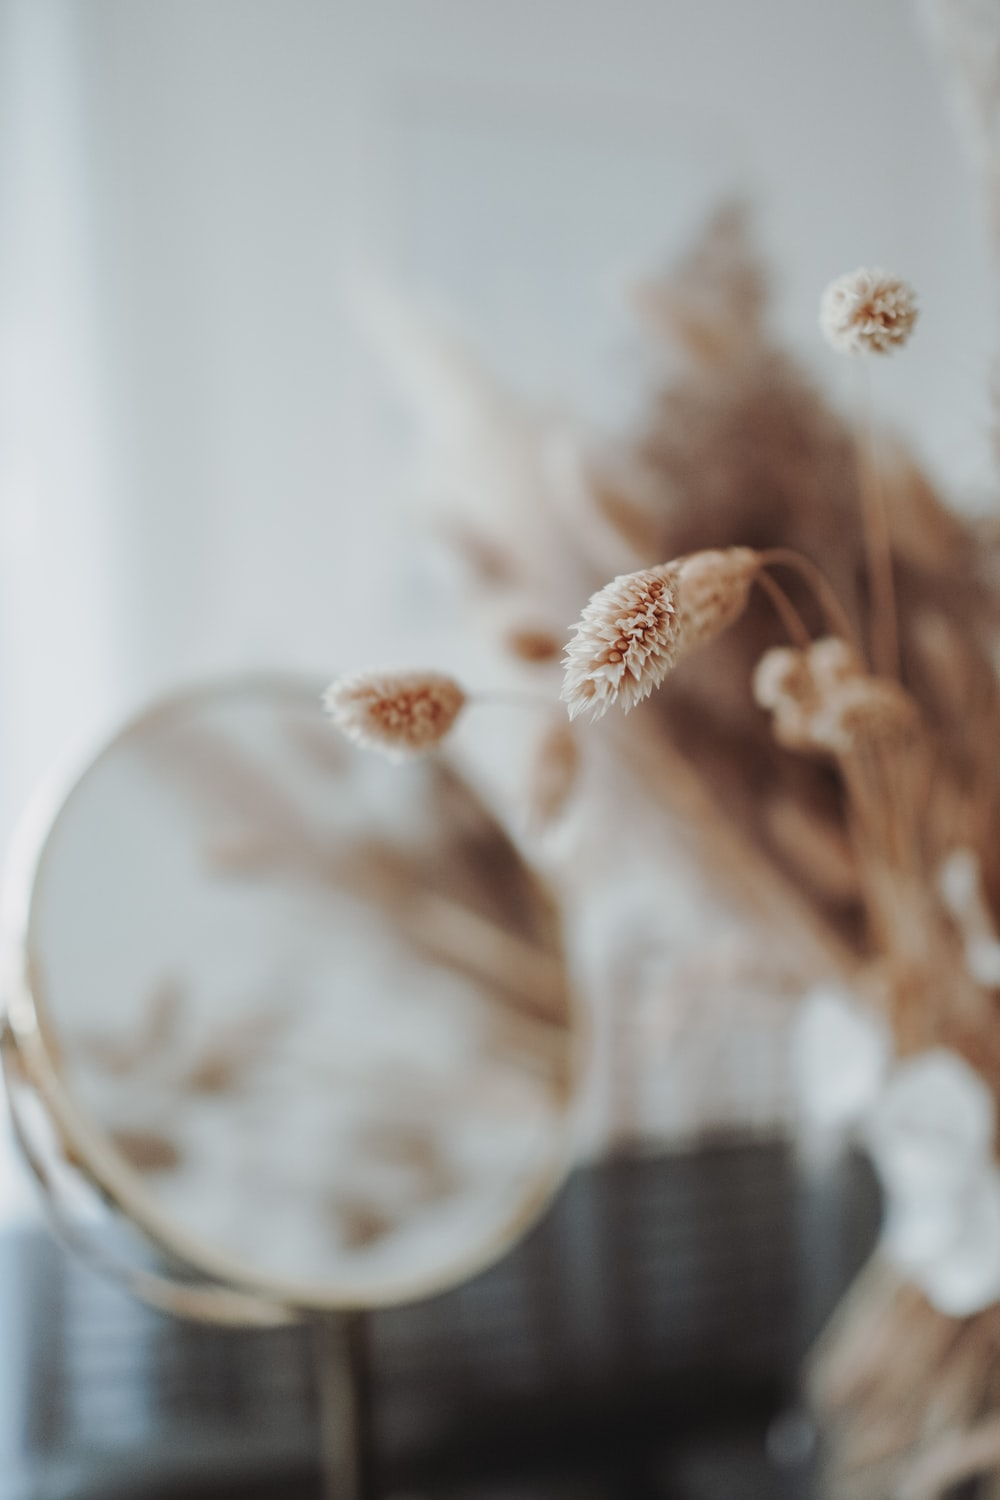 white and brown flower in clear glass vase